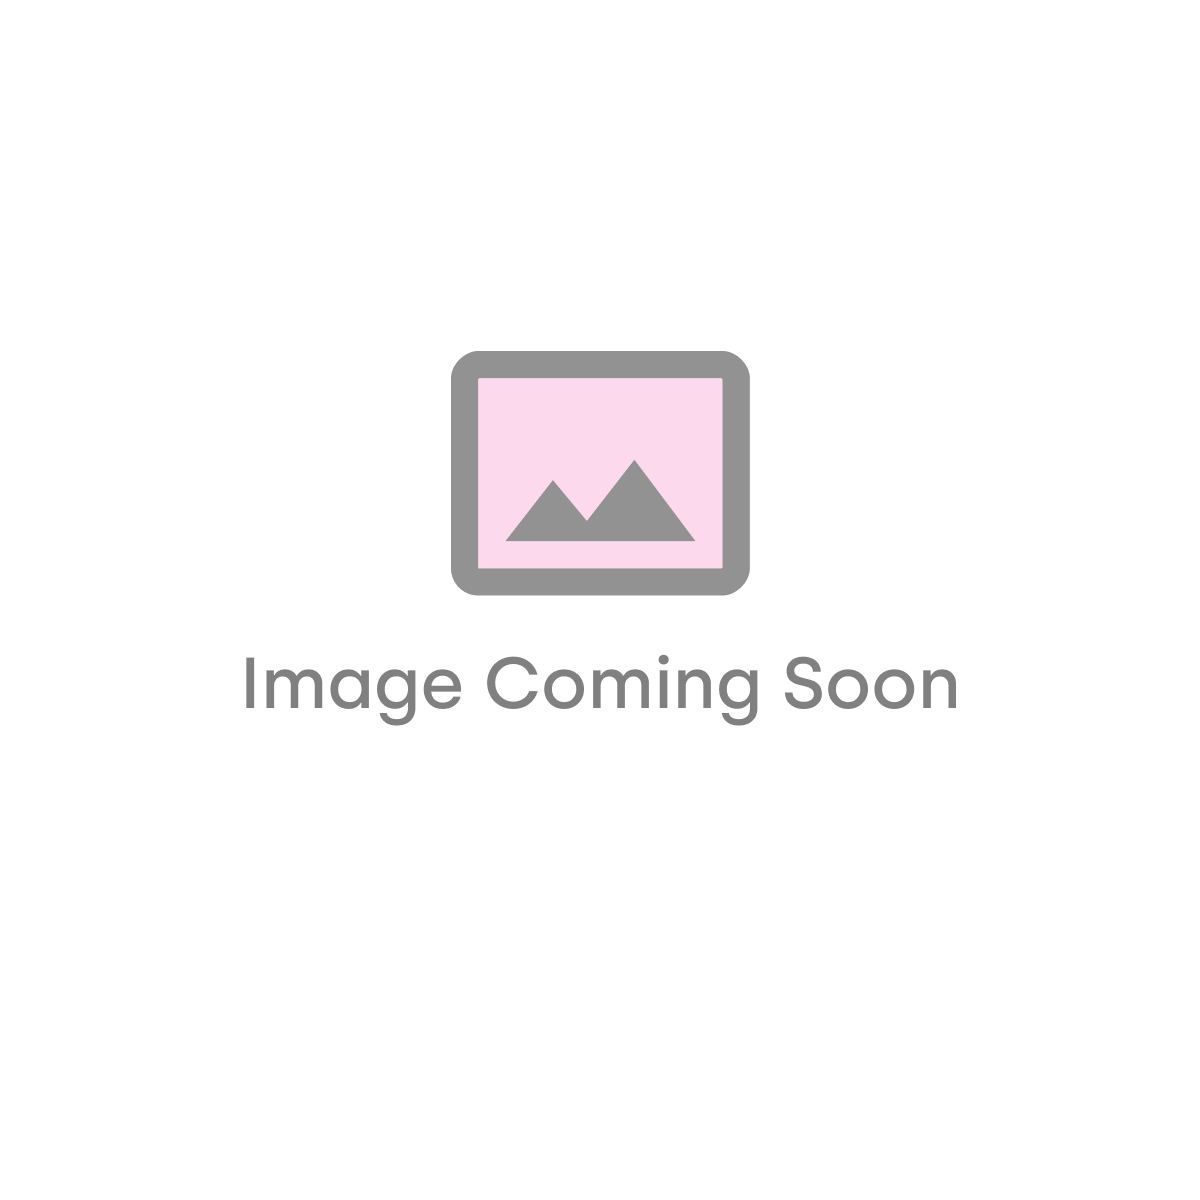 Minuto 400mm Floorstanding Cloakroom Vanity Unit & Basin - Hacienda Black (19260)